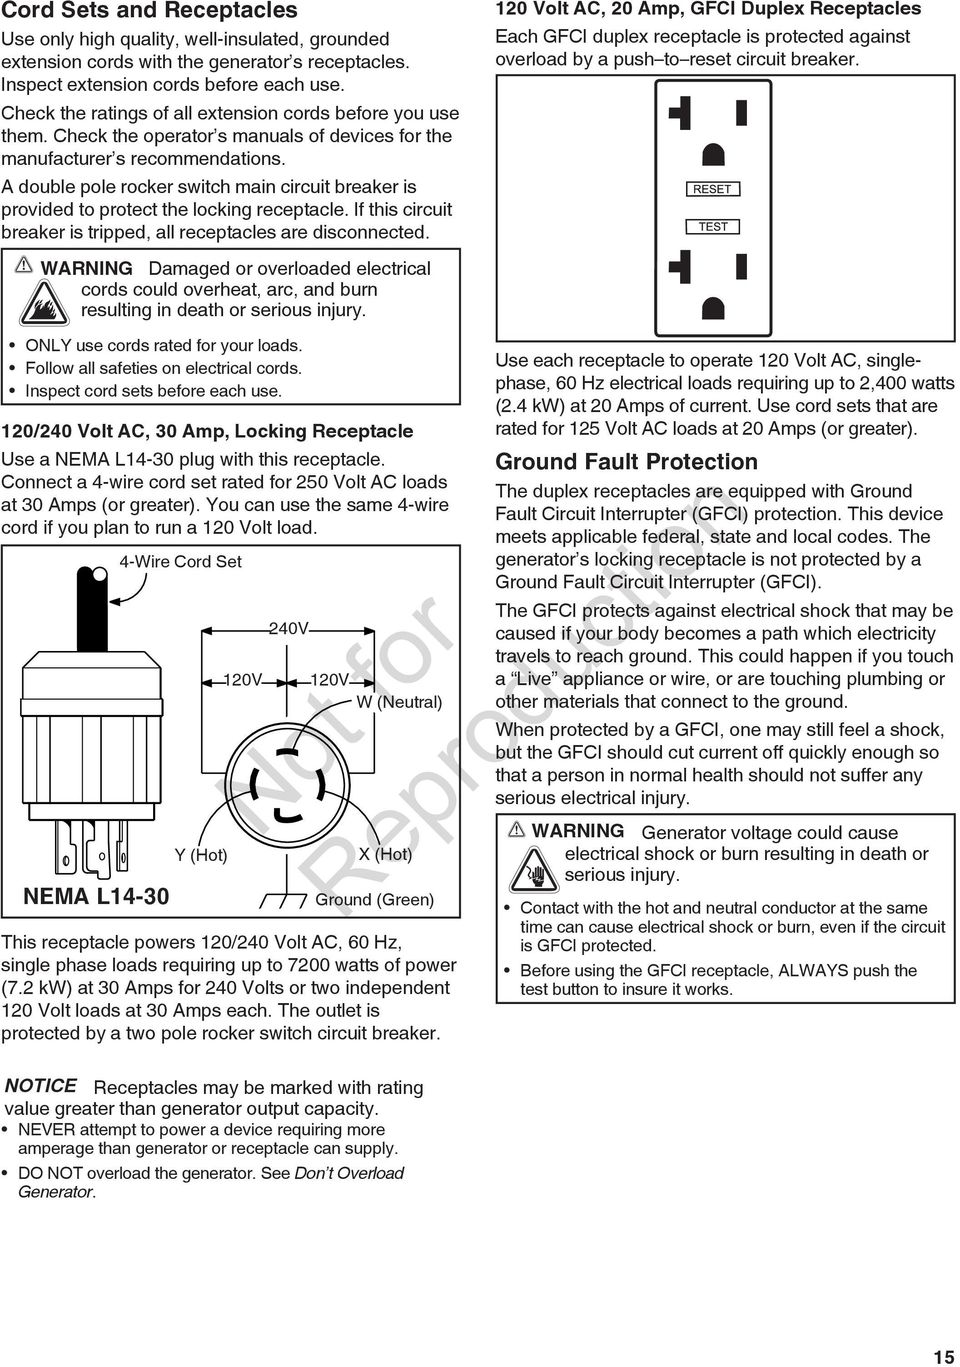 Portable Generator Operator S Manual Pdf 120 And 240 Volt Receptacles How To Install A Switch Or Receptacle Double Pole Rocker Main Circuit Breaker Is Provided Protect The Locking